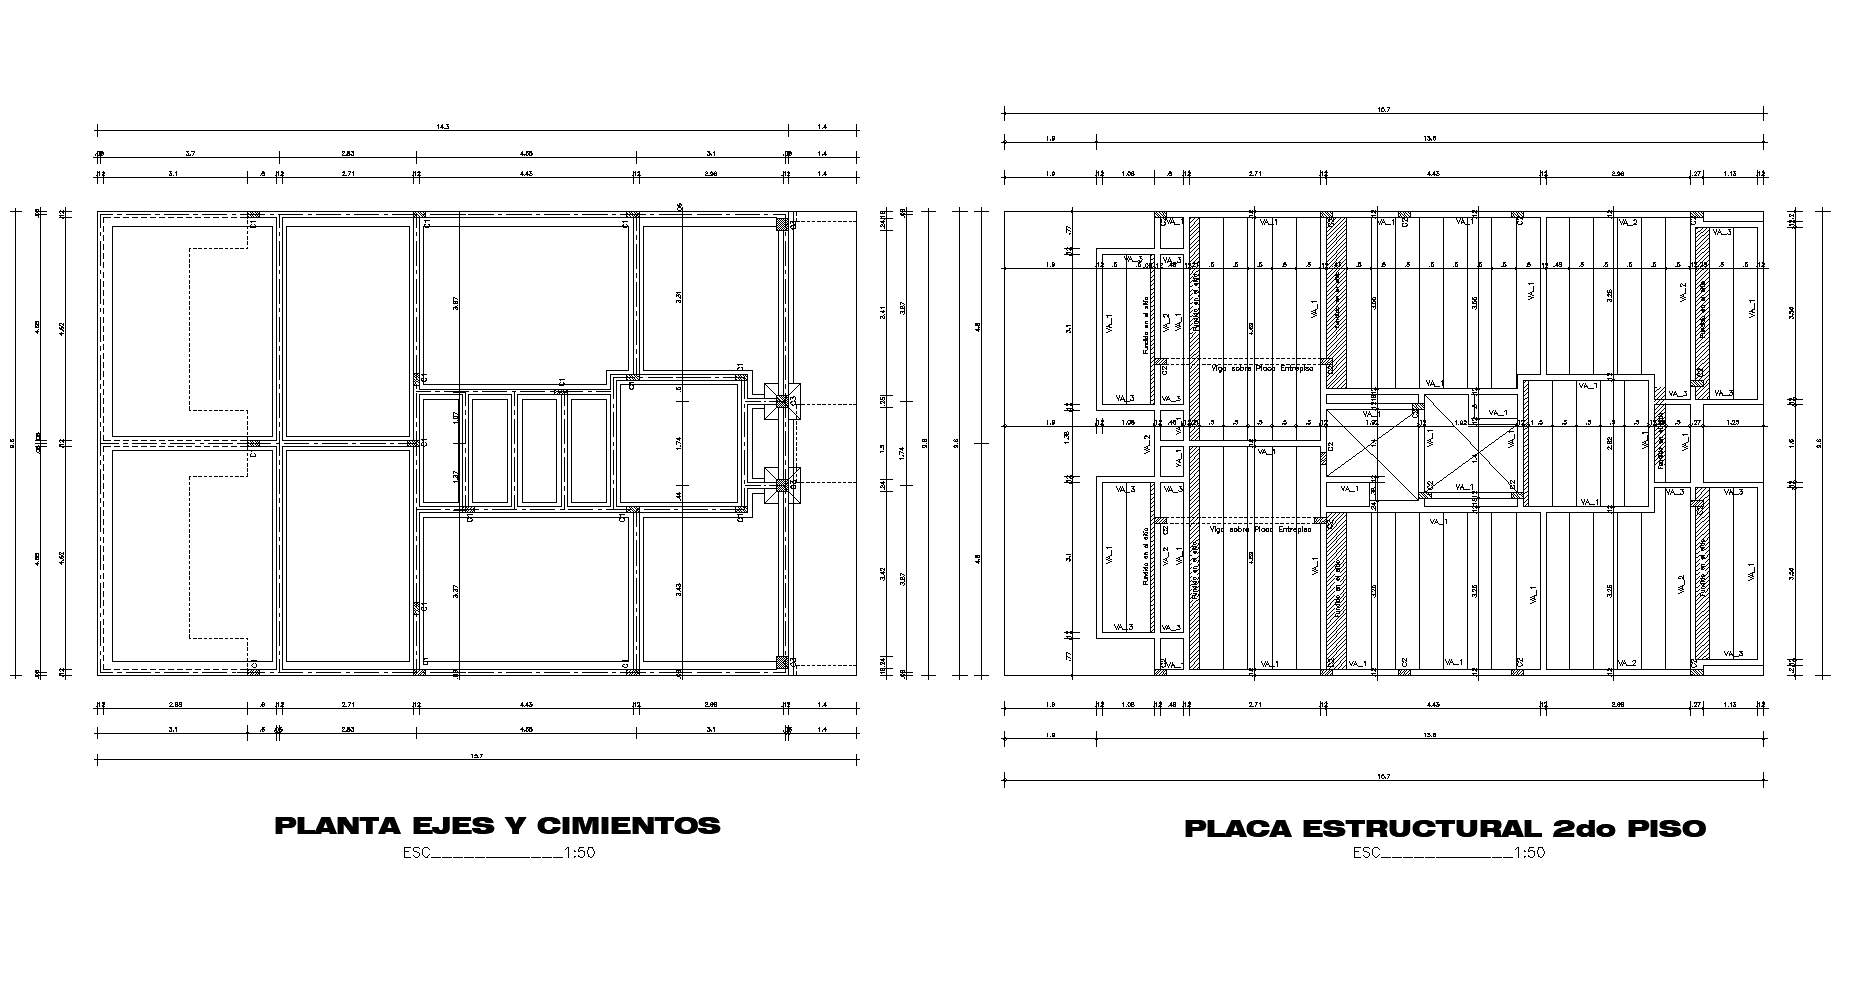 Multi-family loft plan detail dwg file.